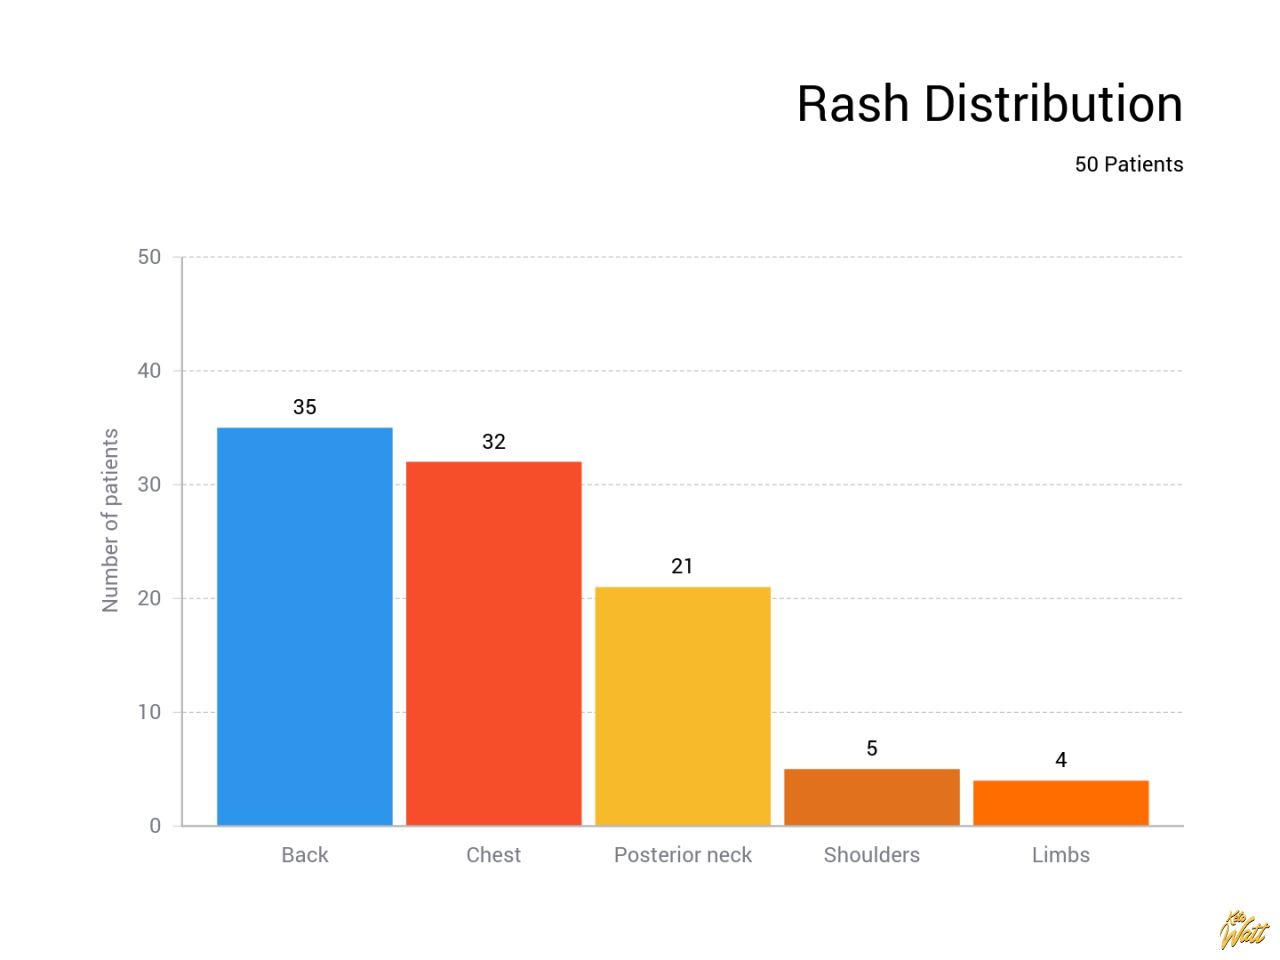 Rash Distribution